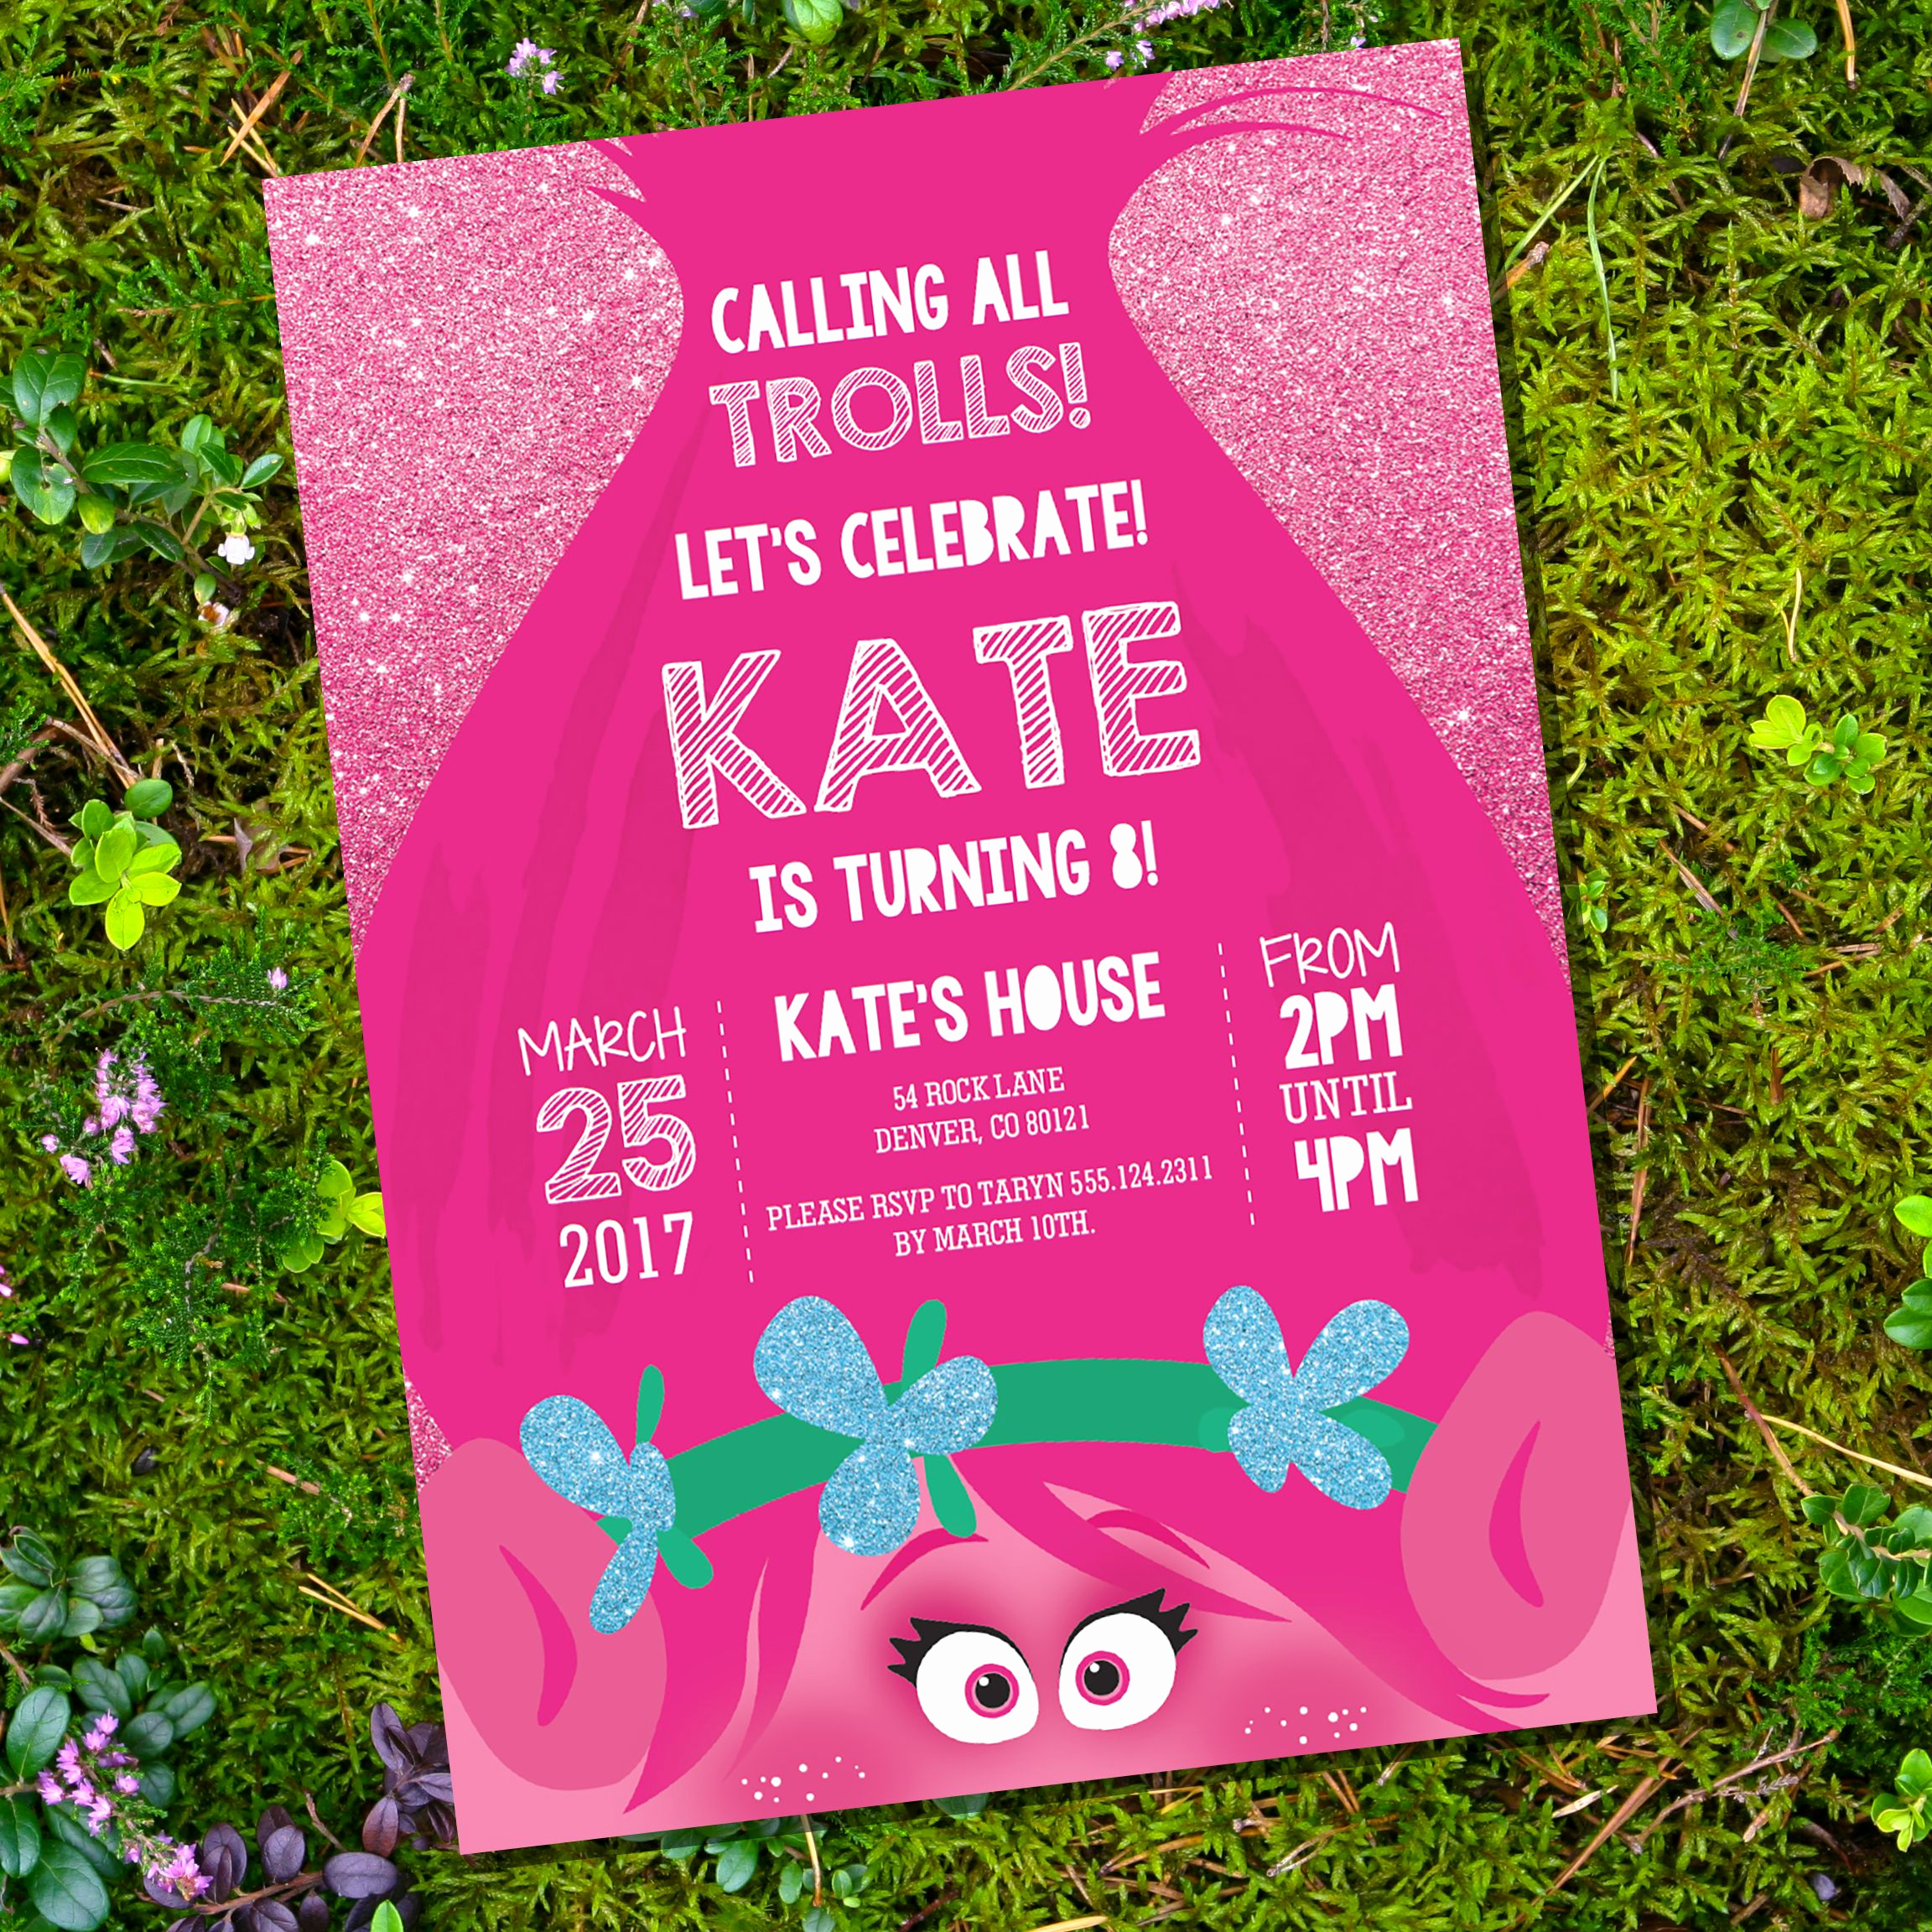 Free Trolls Invitation Template Lovely Free Trolls Party Download Set Including Invitation Decor